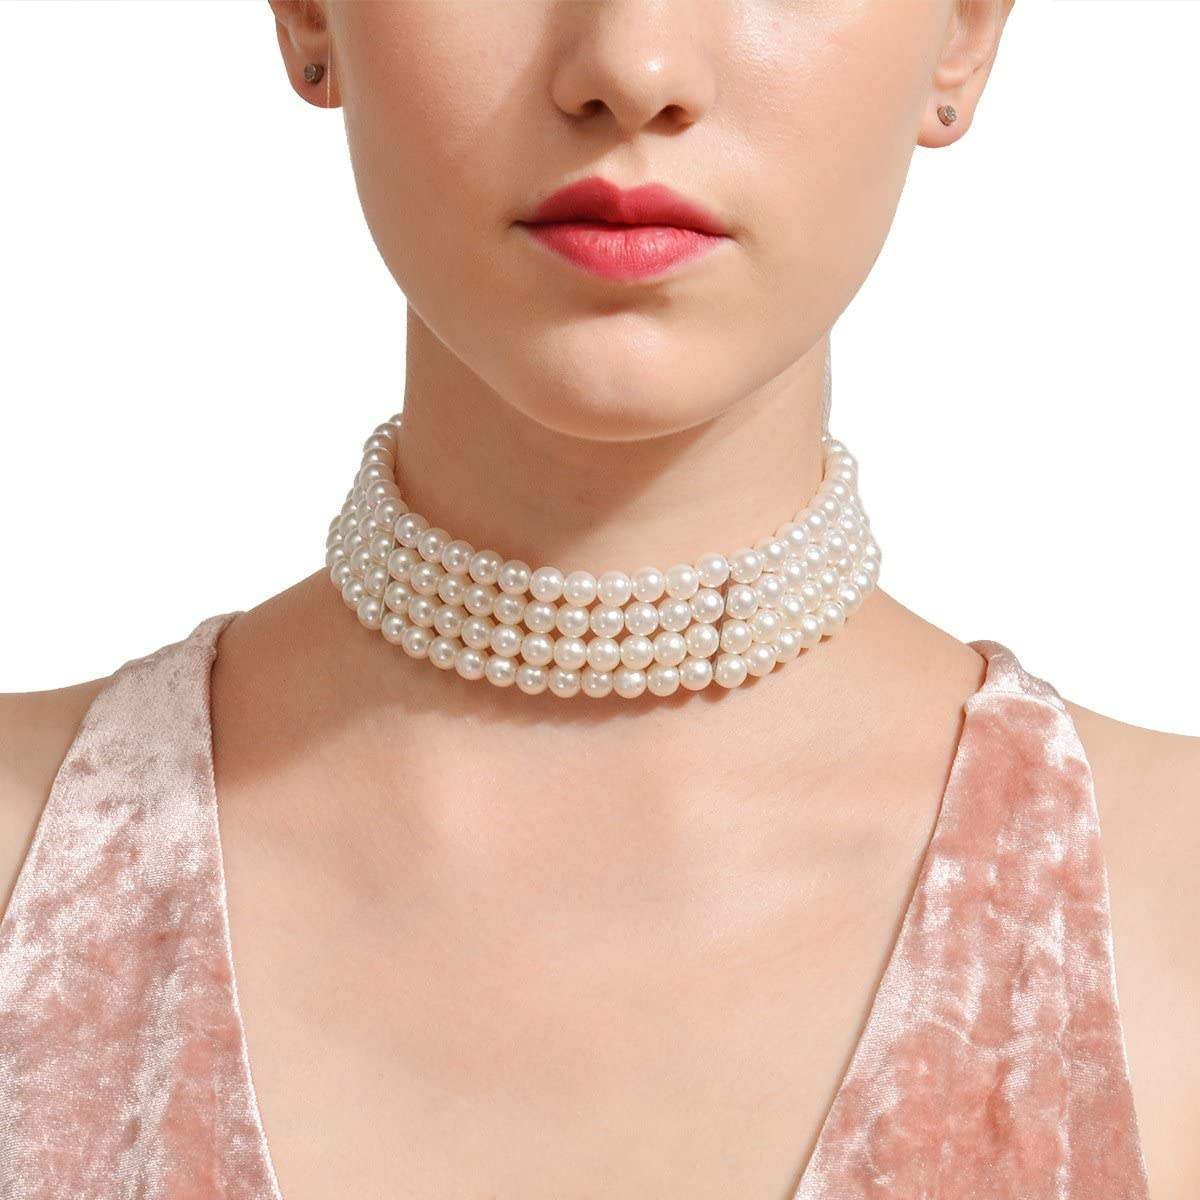 Multi Strand Faux Pearl Choker Necklace for Women Girls 10.3-14.17 inches